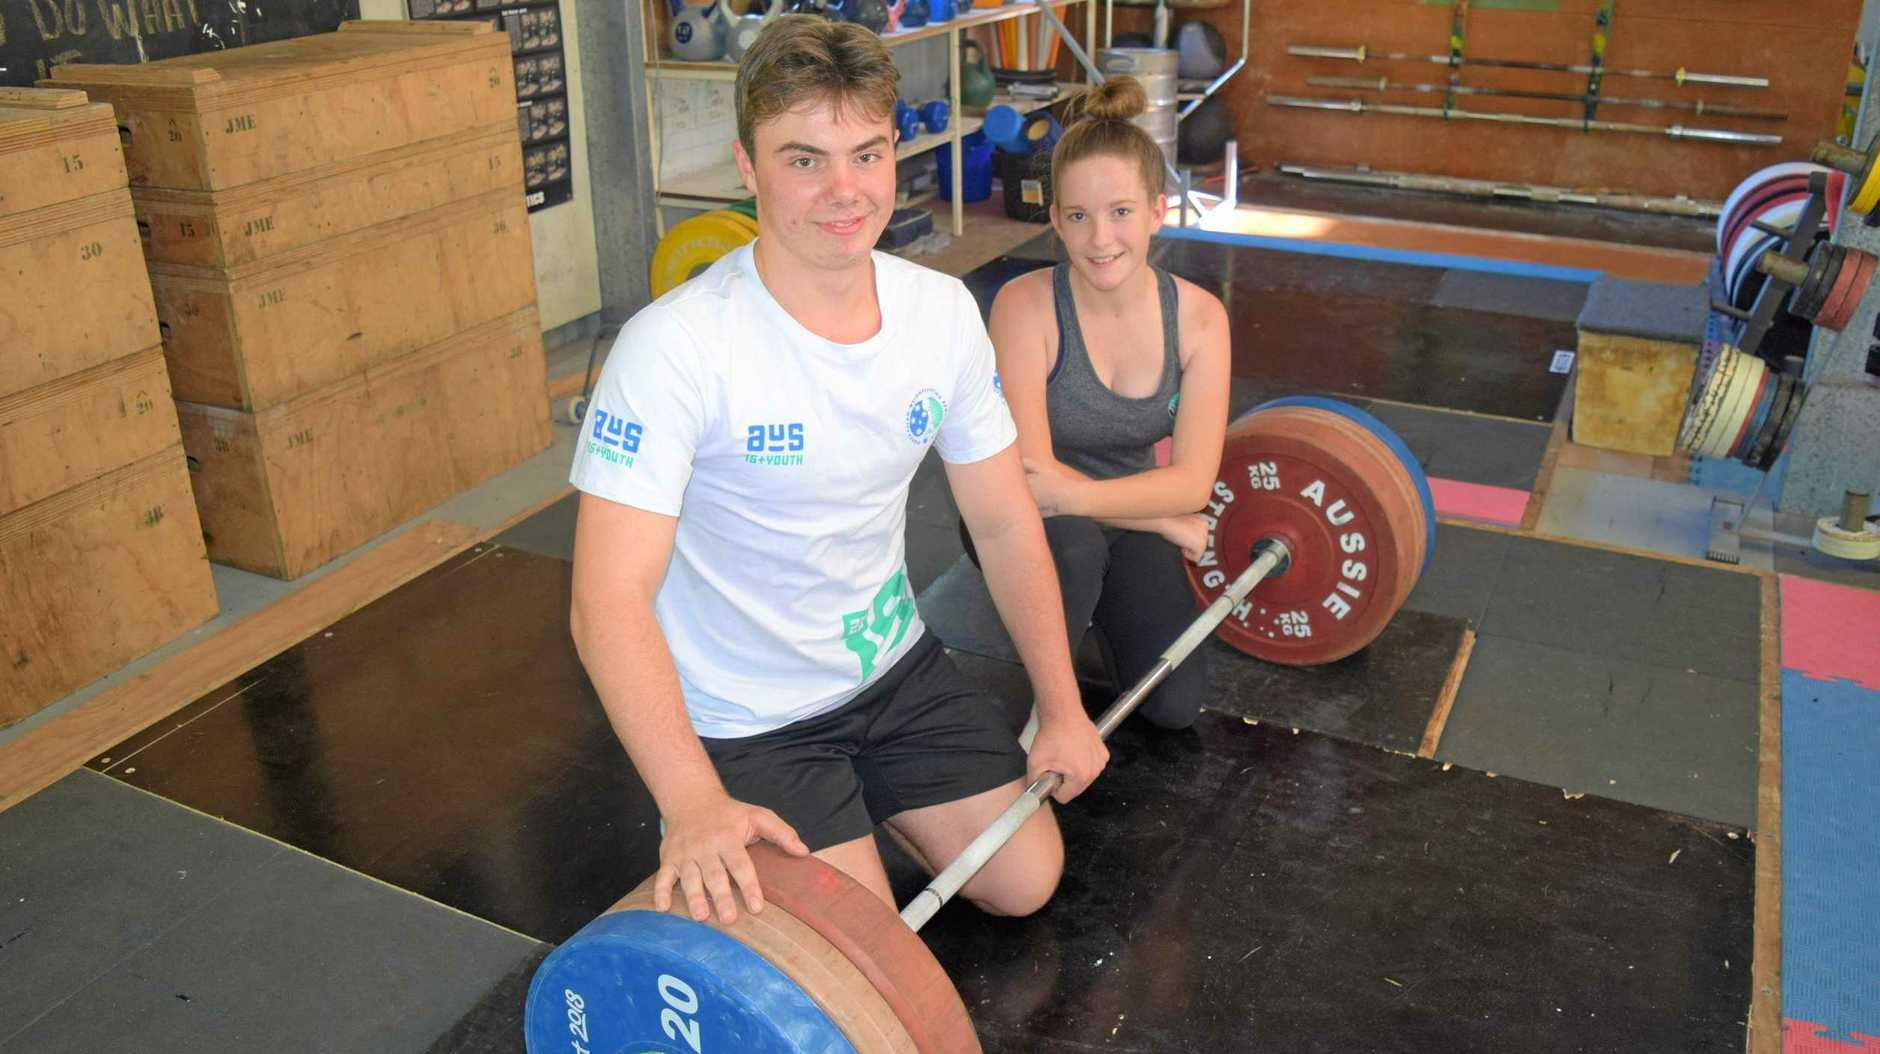 Whitsunday Weightlifting athletes Jasper Hope, 17, and Emily Bennett, 14, are all smiles after their success at the 2019 Australian Under 15 and Youth Championships.